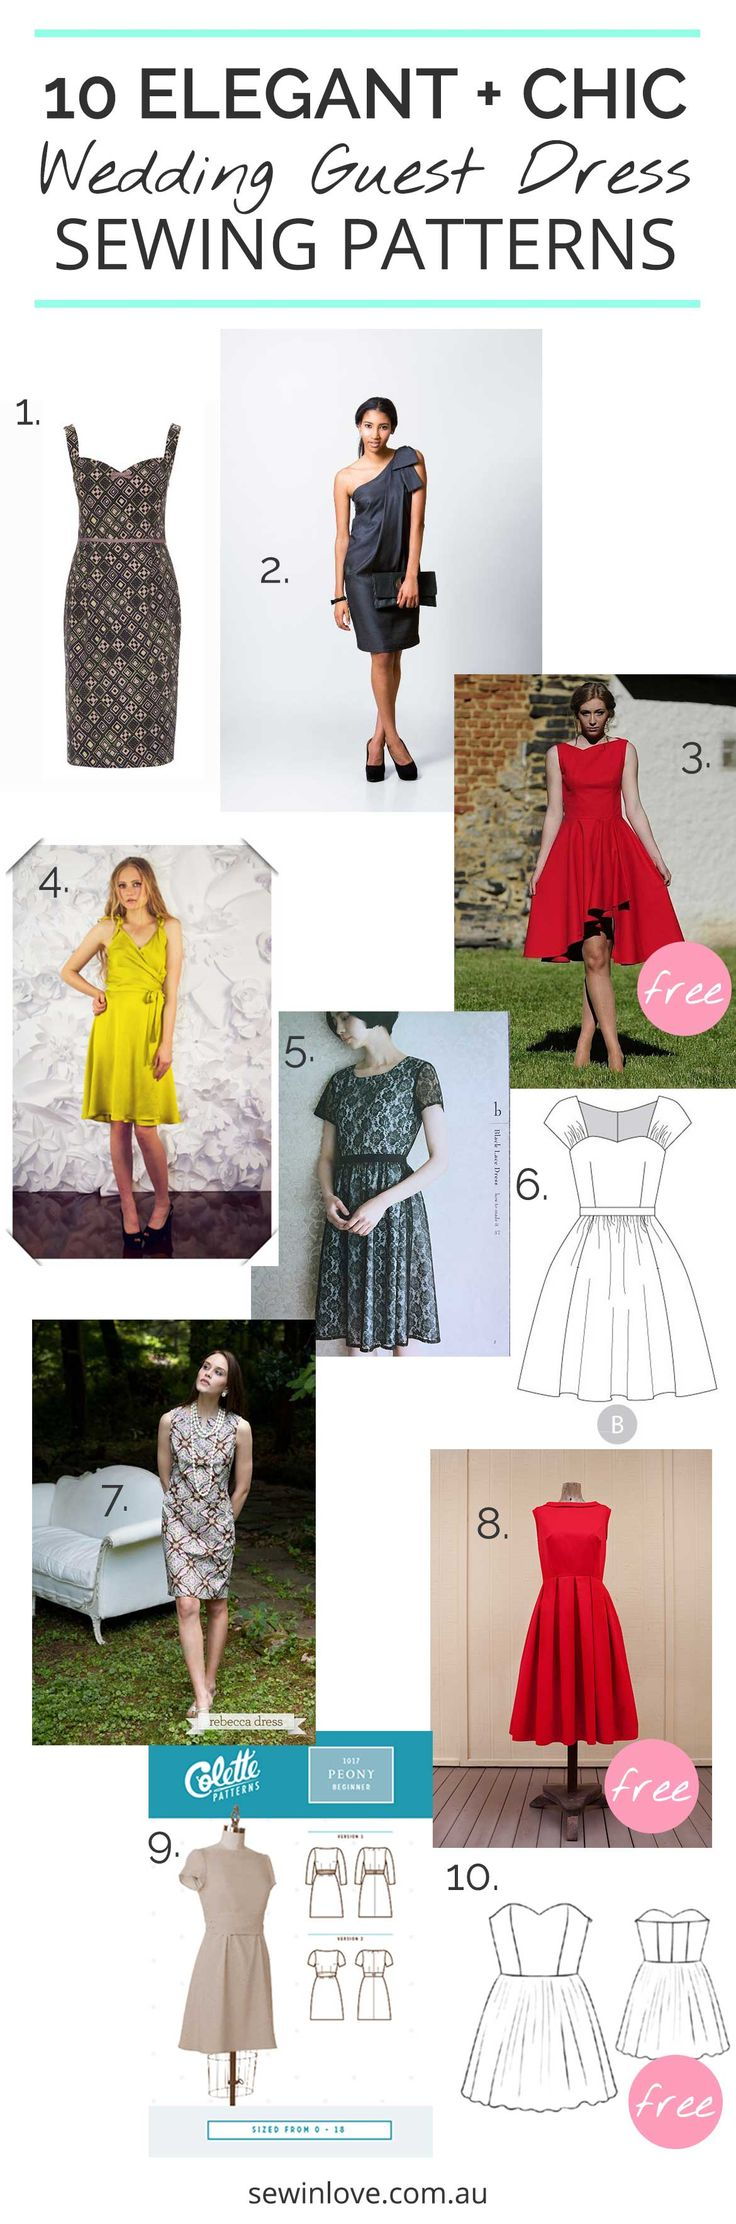 10 Wedding Guest Dresses to Make | A special occasion is just the motivation I need to sew something a little more advanced than usual. Here are 10 sewing patterns which would make an elegant and chic wedding guest outfit.3 of them are free!